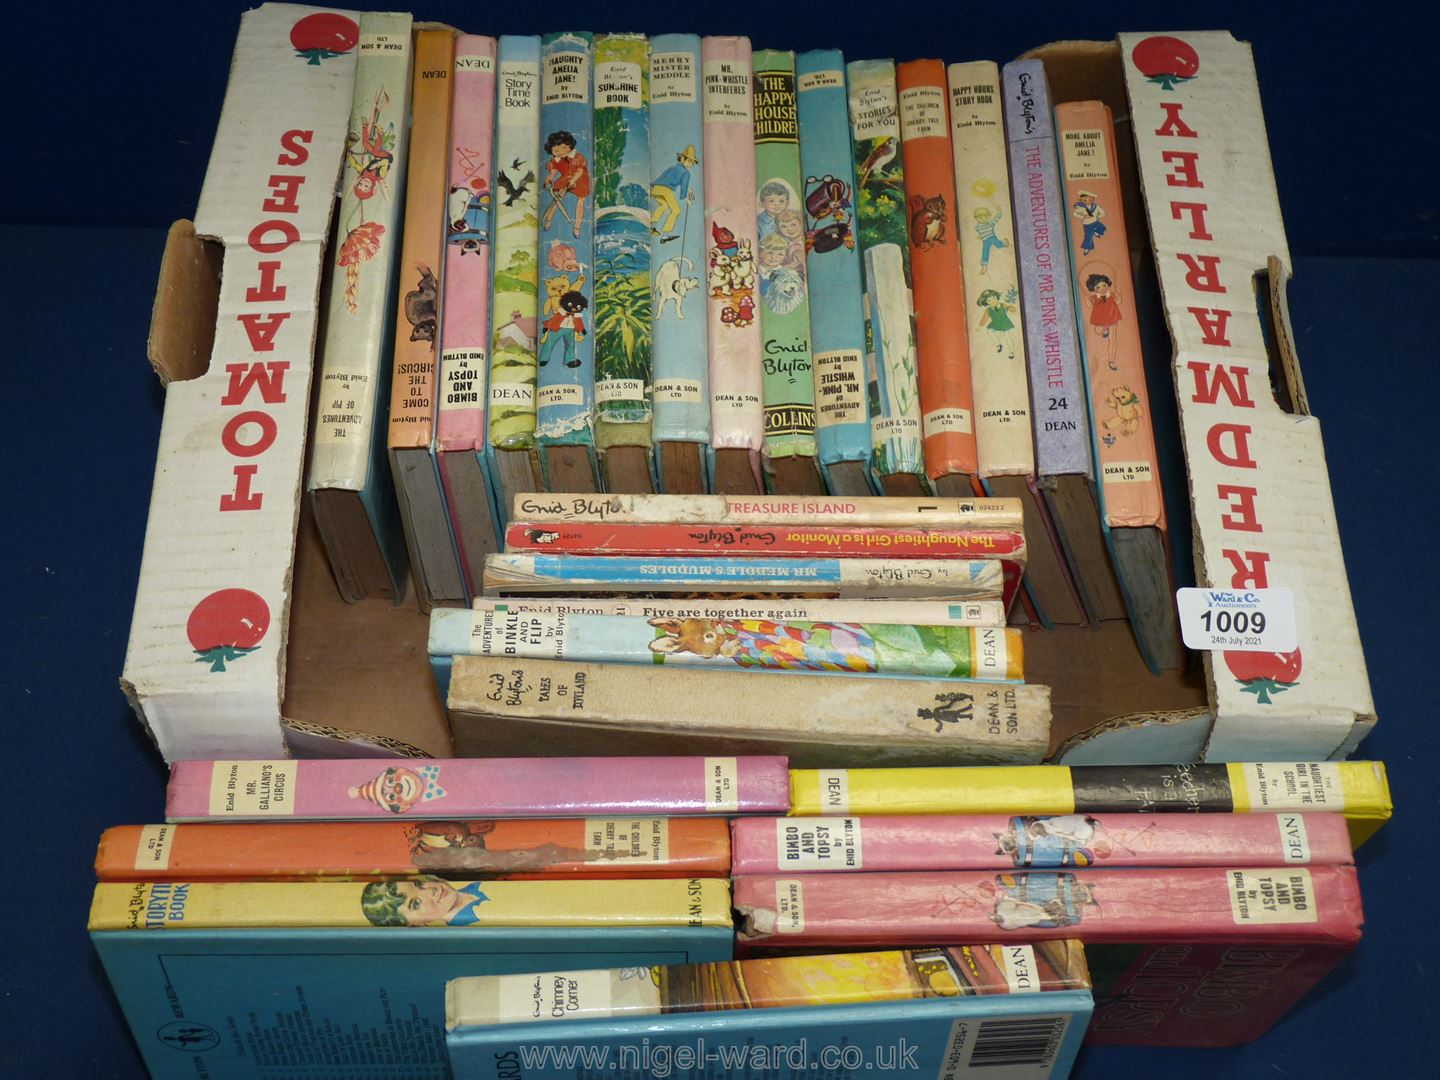 A quantity of Enid Blyton books including 'Bimbo and Topsy' and 'Naughty Amelia Jane'.